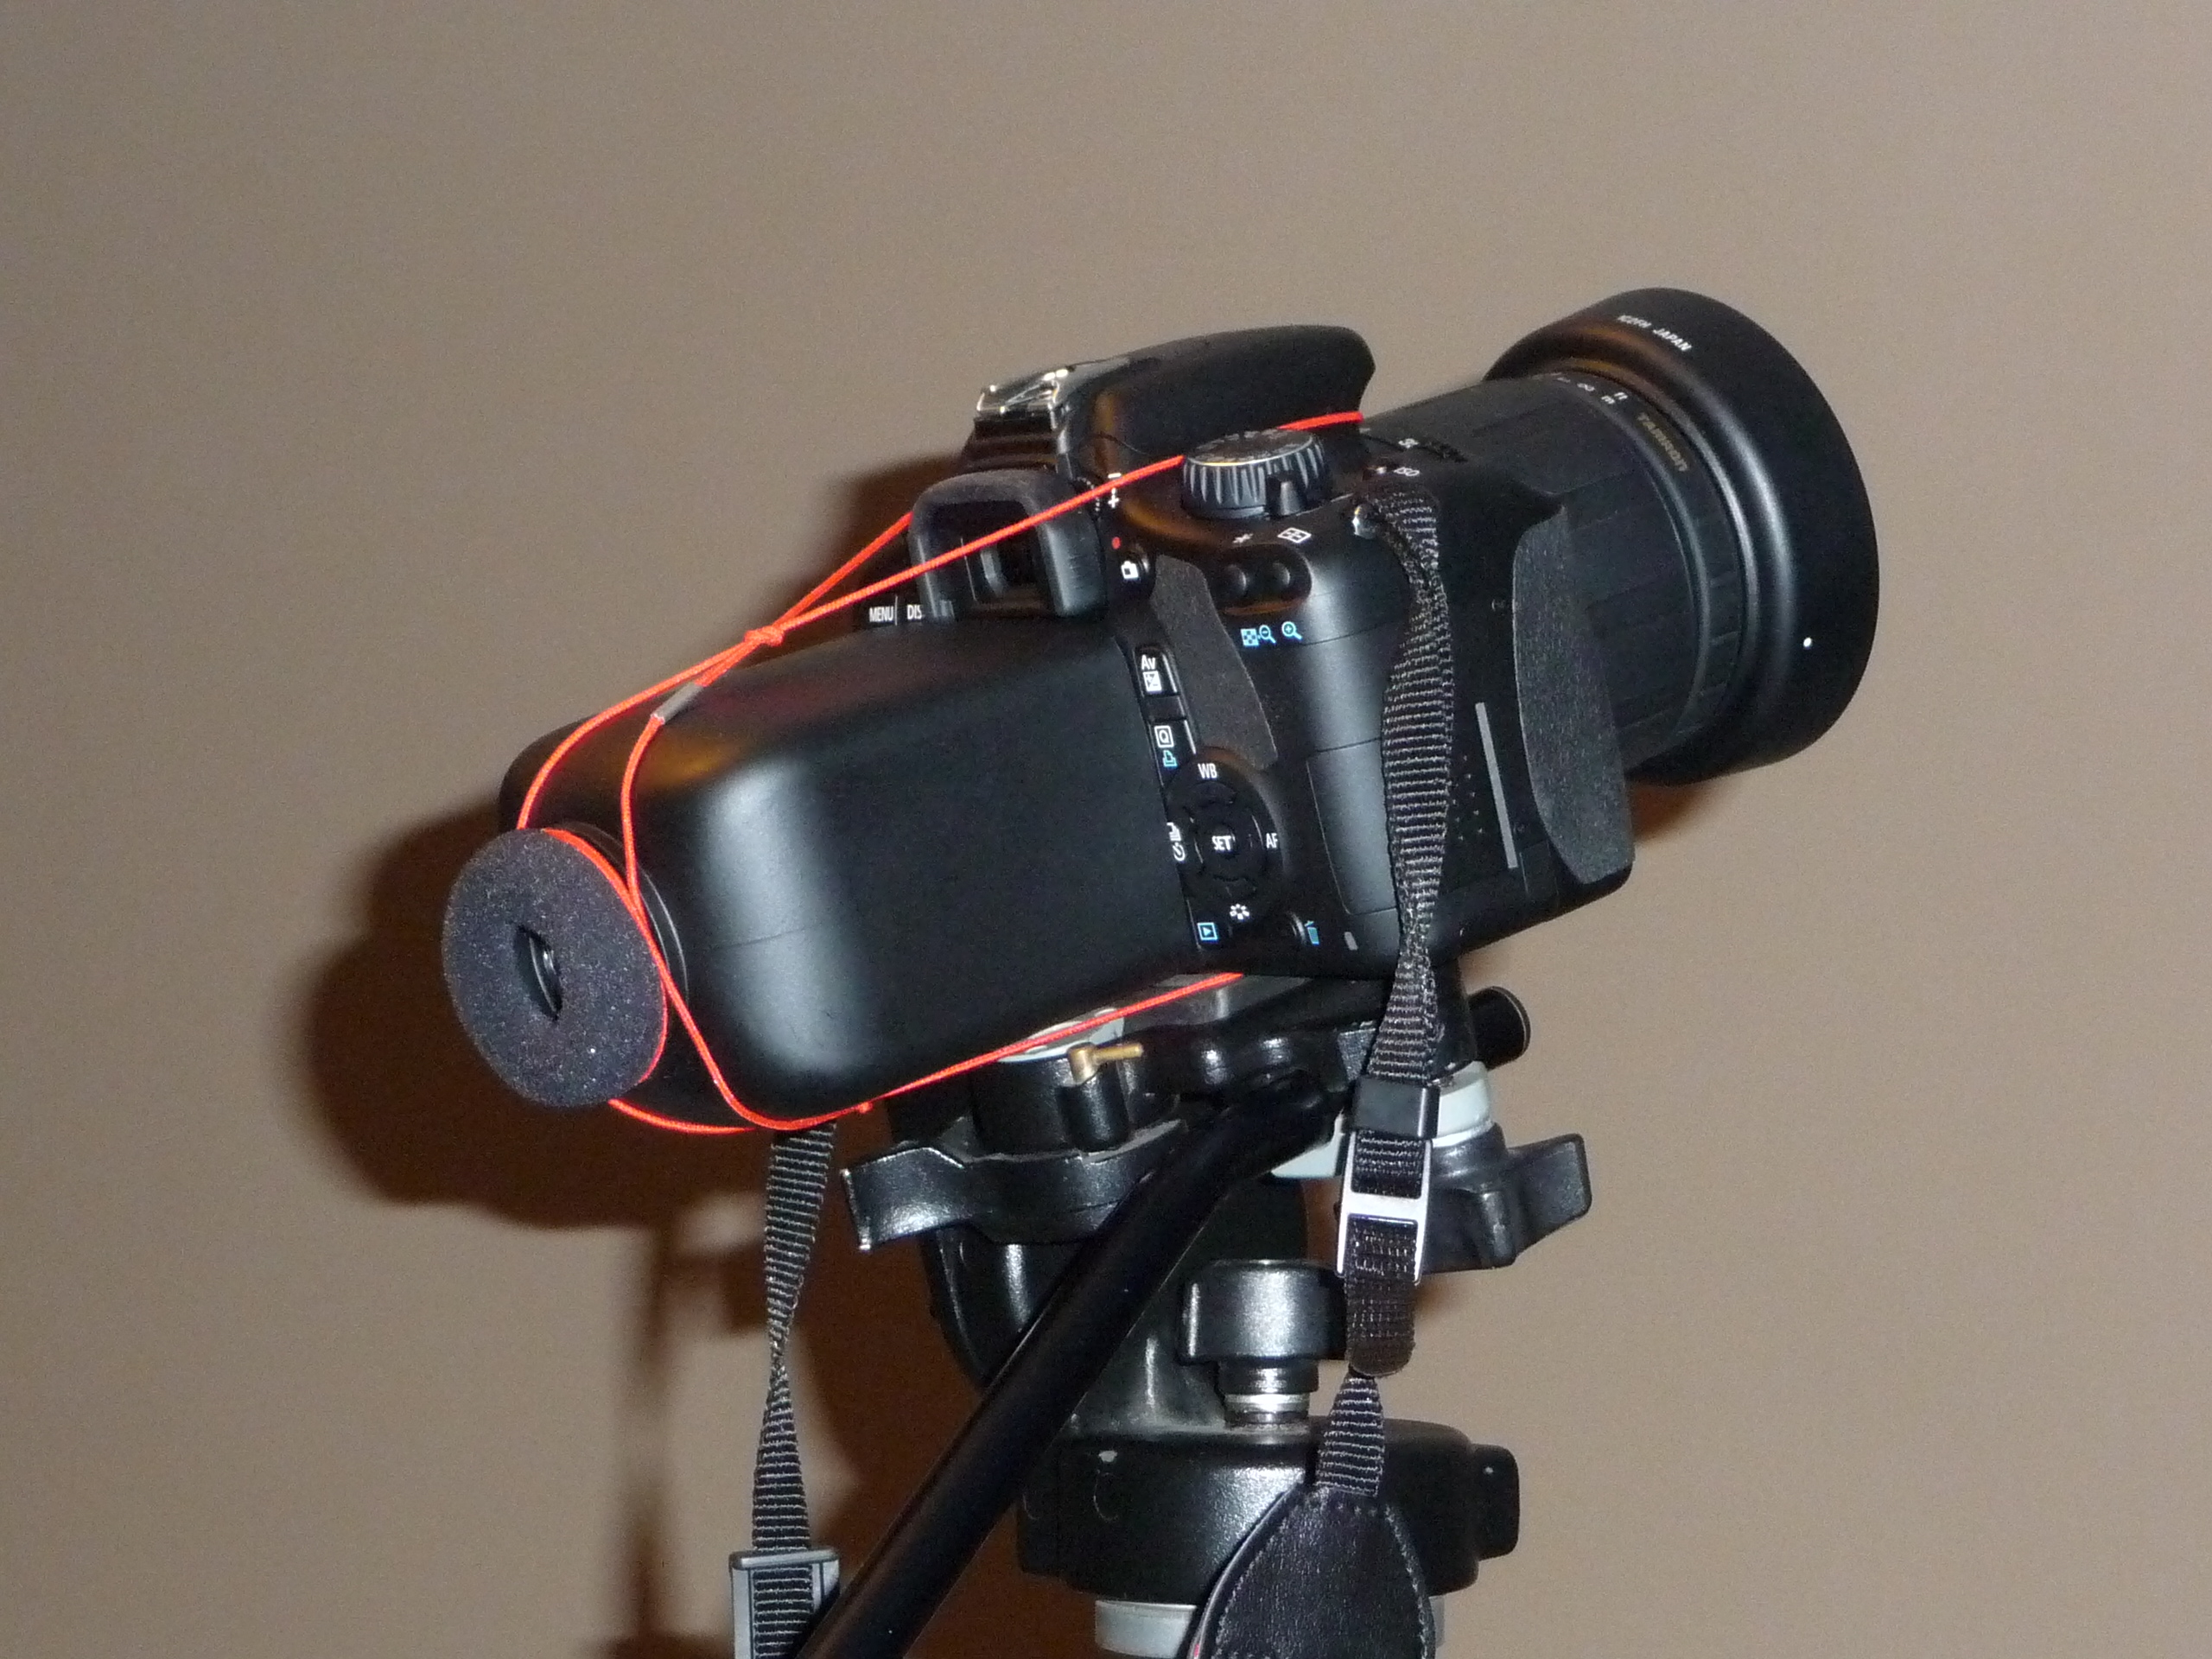 HOMEMADE DSLR VIEWFINDER - DIY LCD Z-Finder